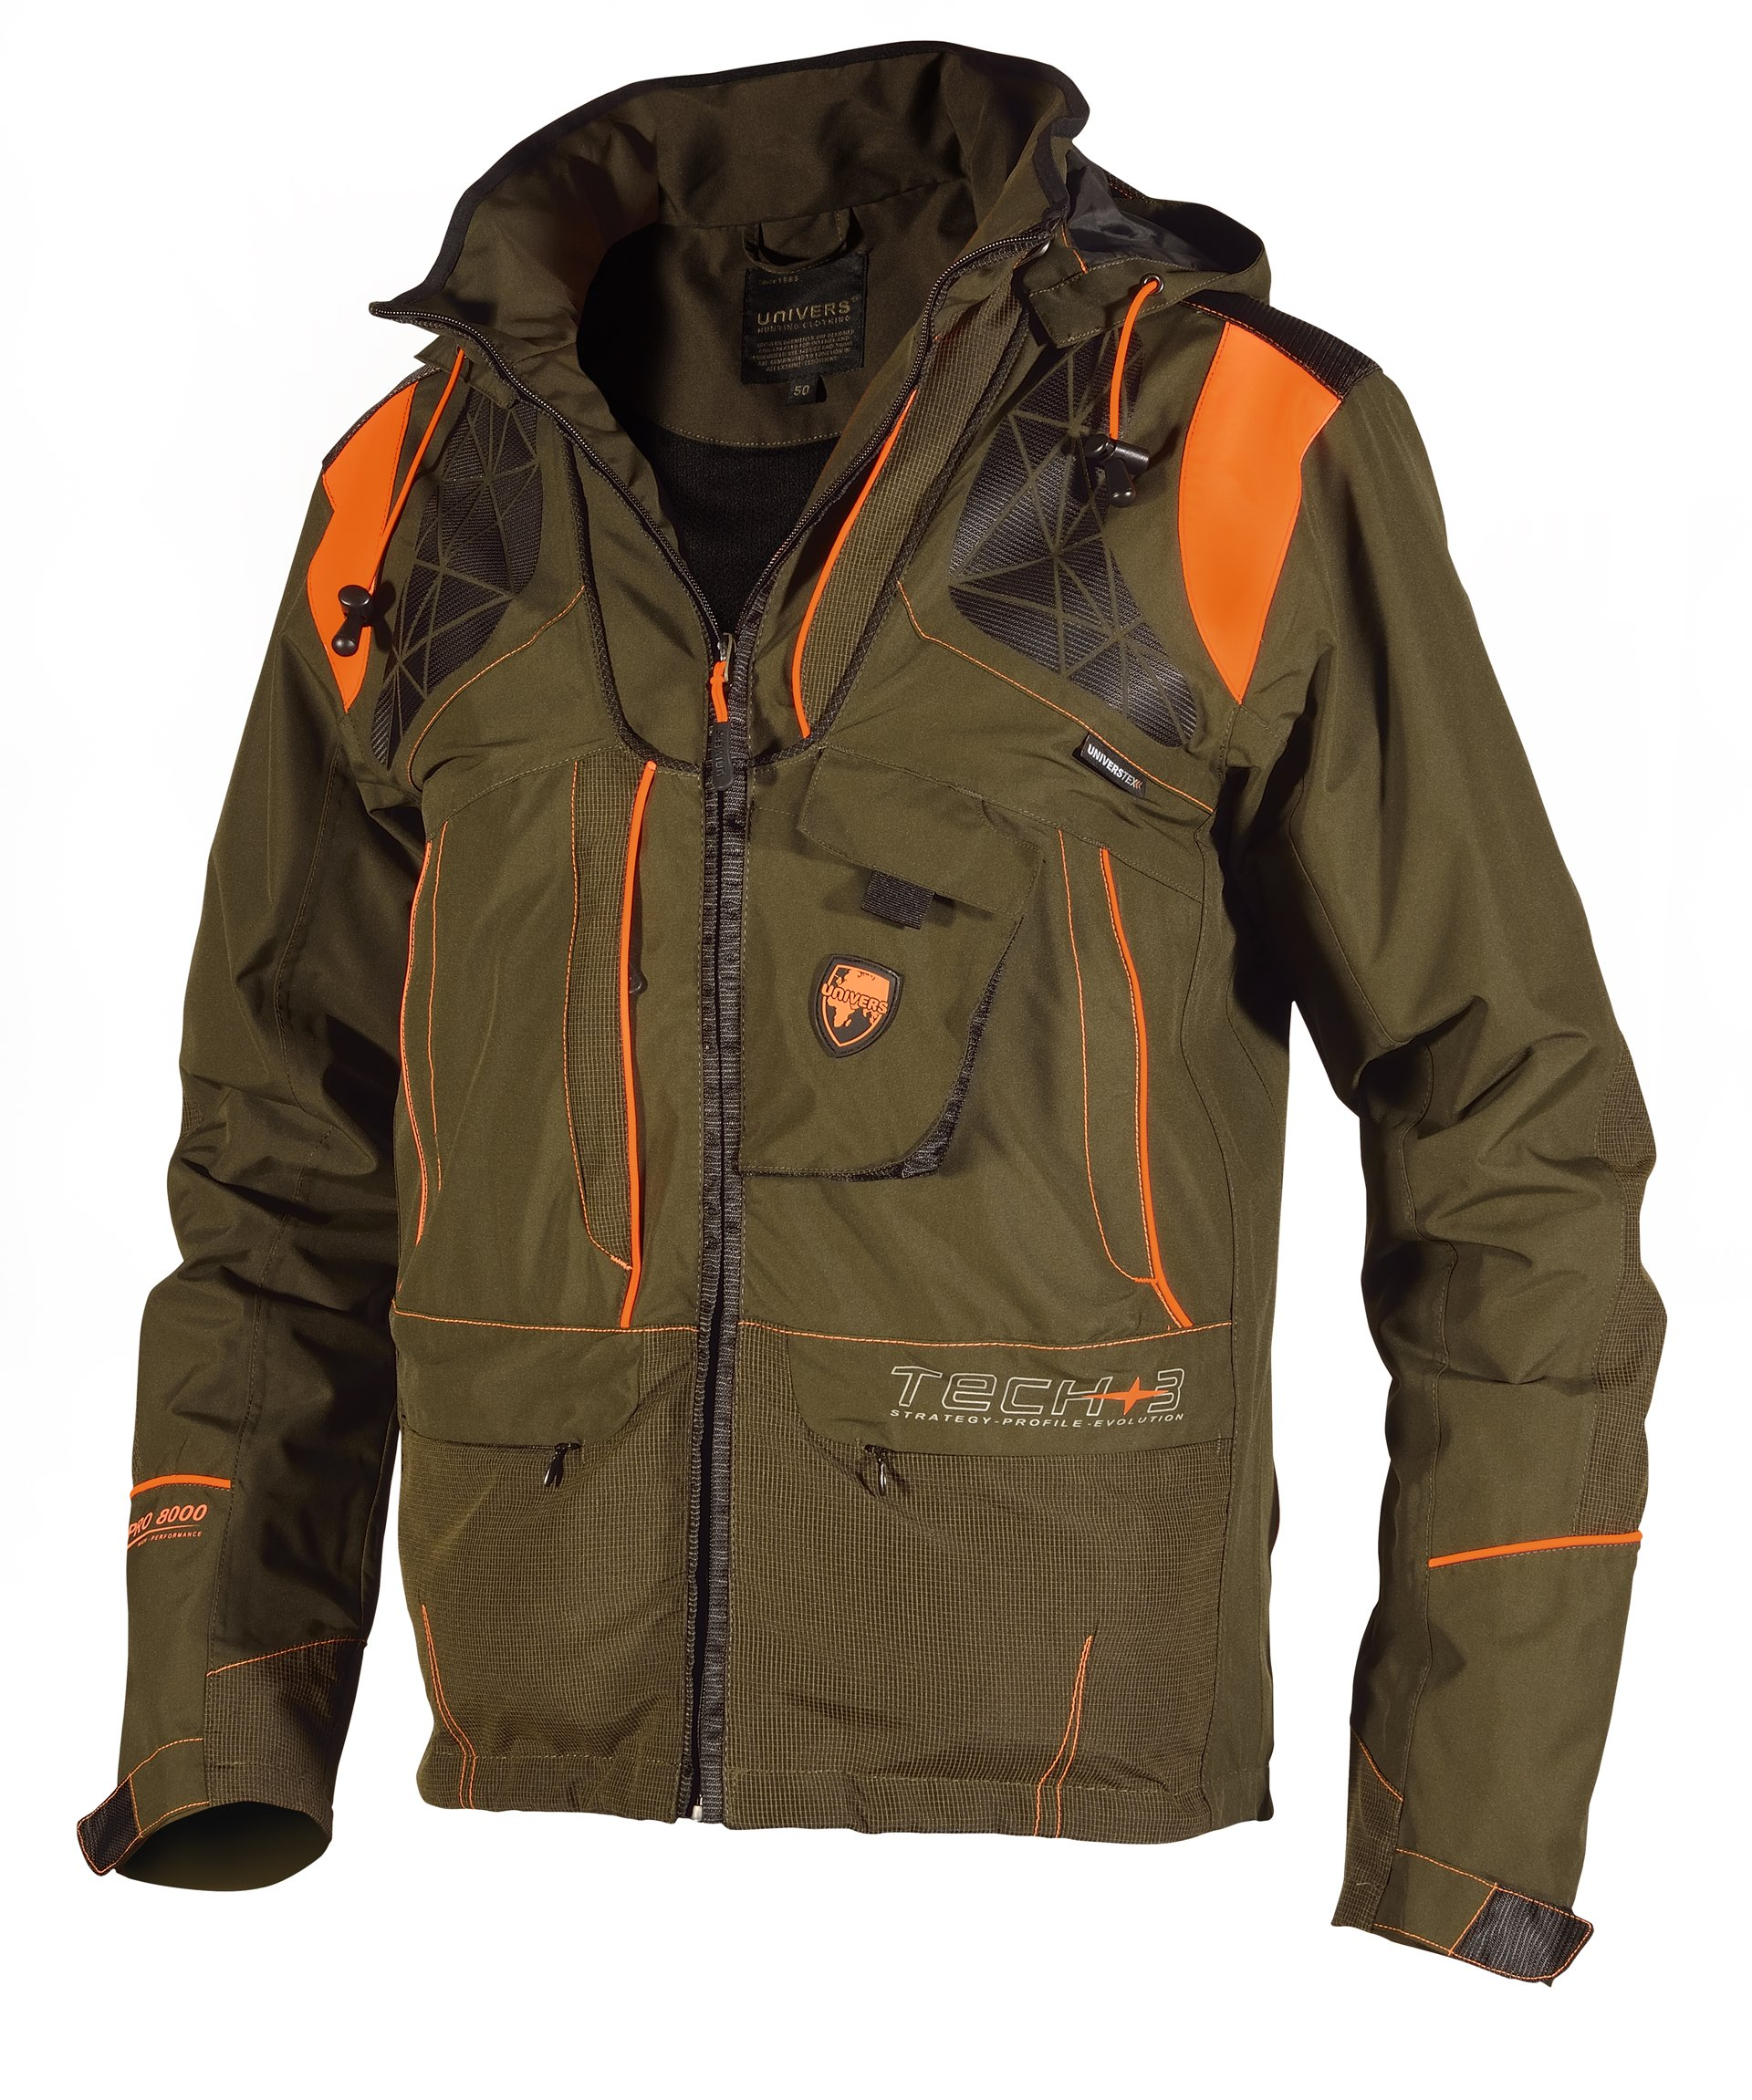 Univers Waterproof Jacket 91142/392